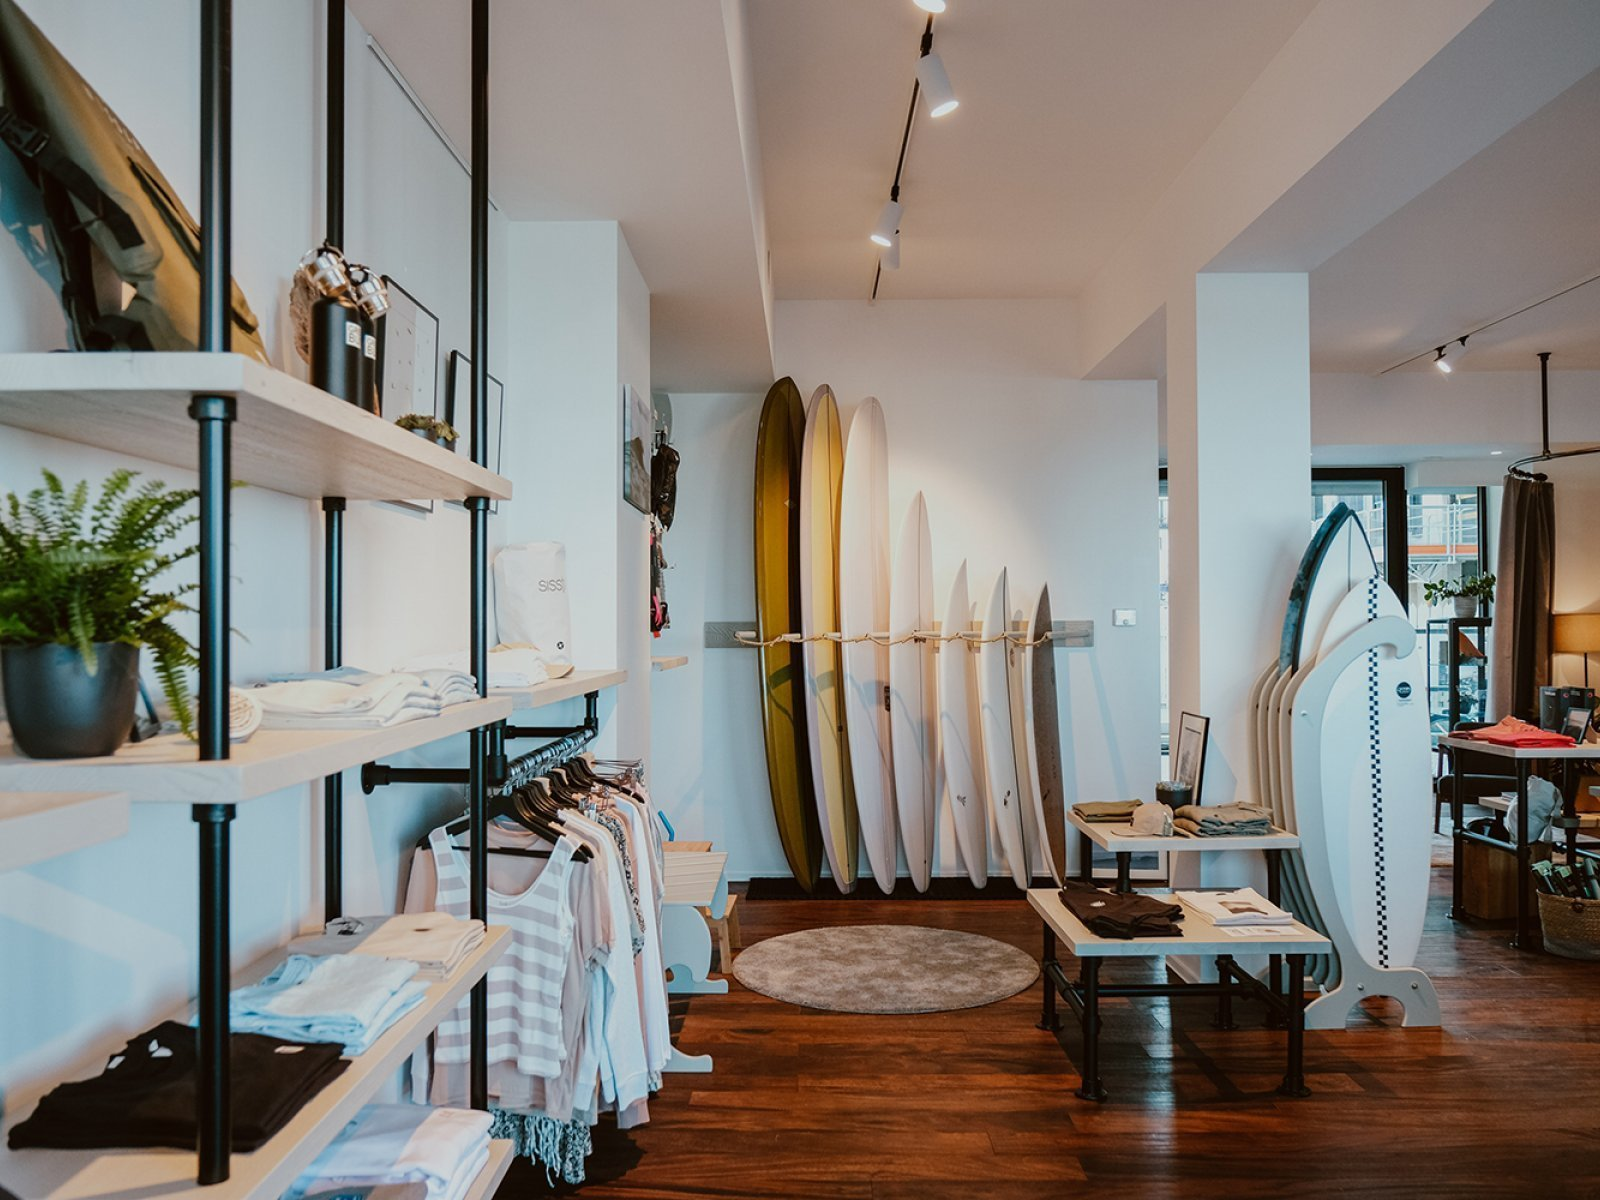 Surfshop in Residentie Oostkaai 11 te Oostende